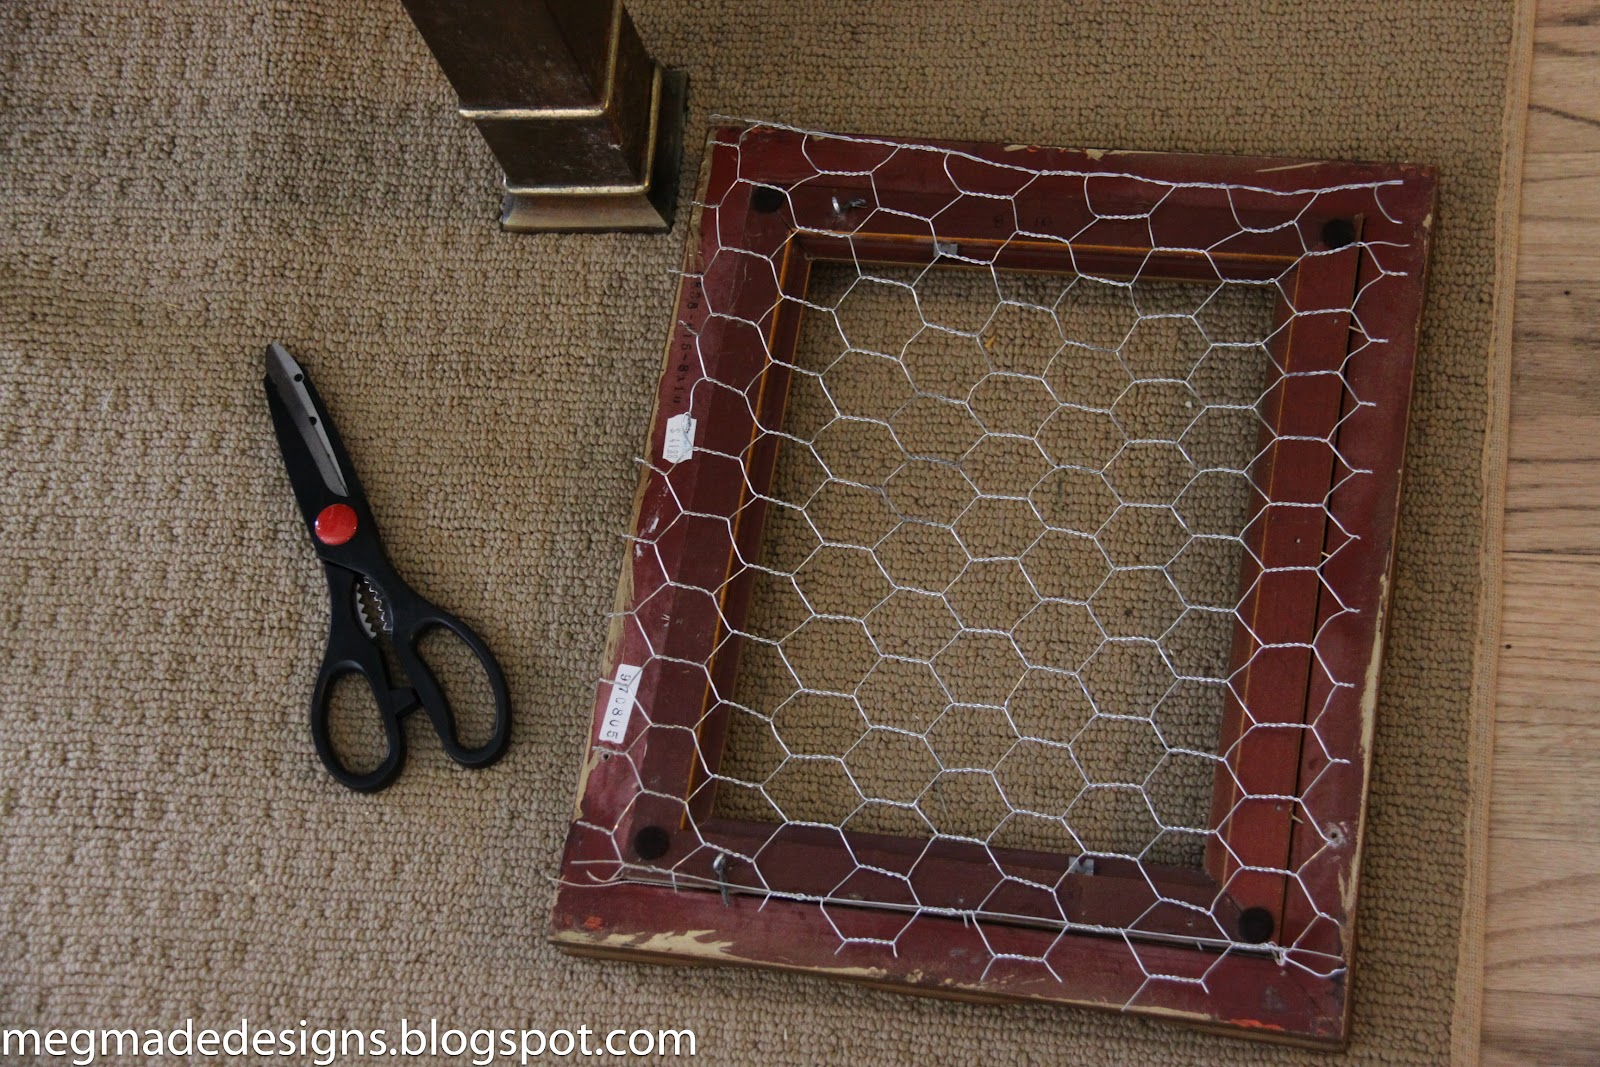 Jazz up an old frame with chicken wire - **MegMade**